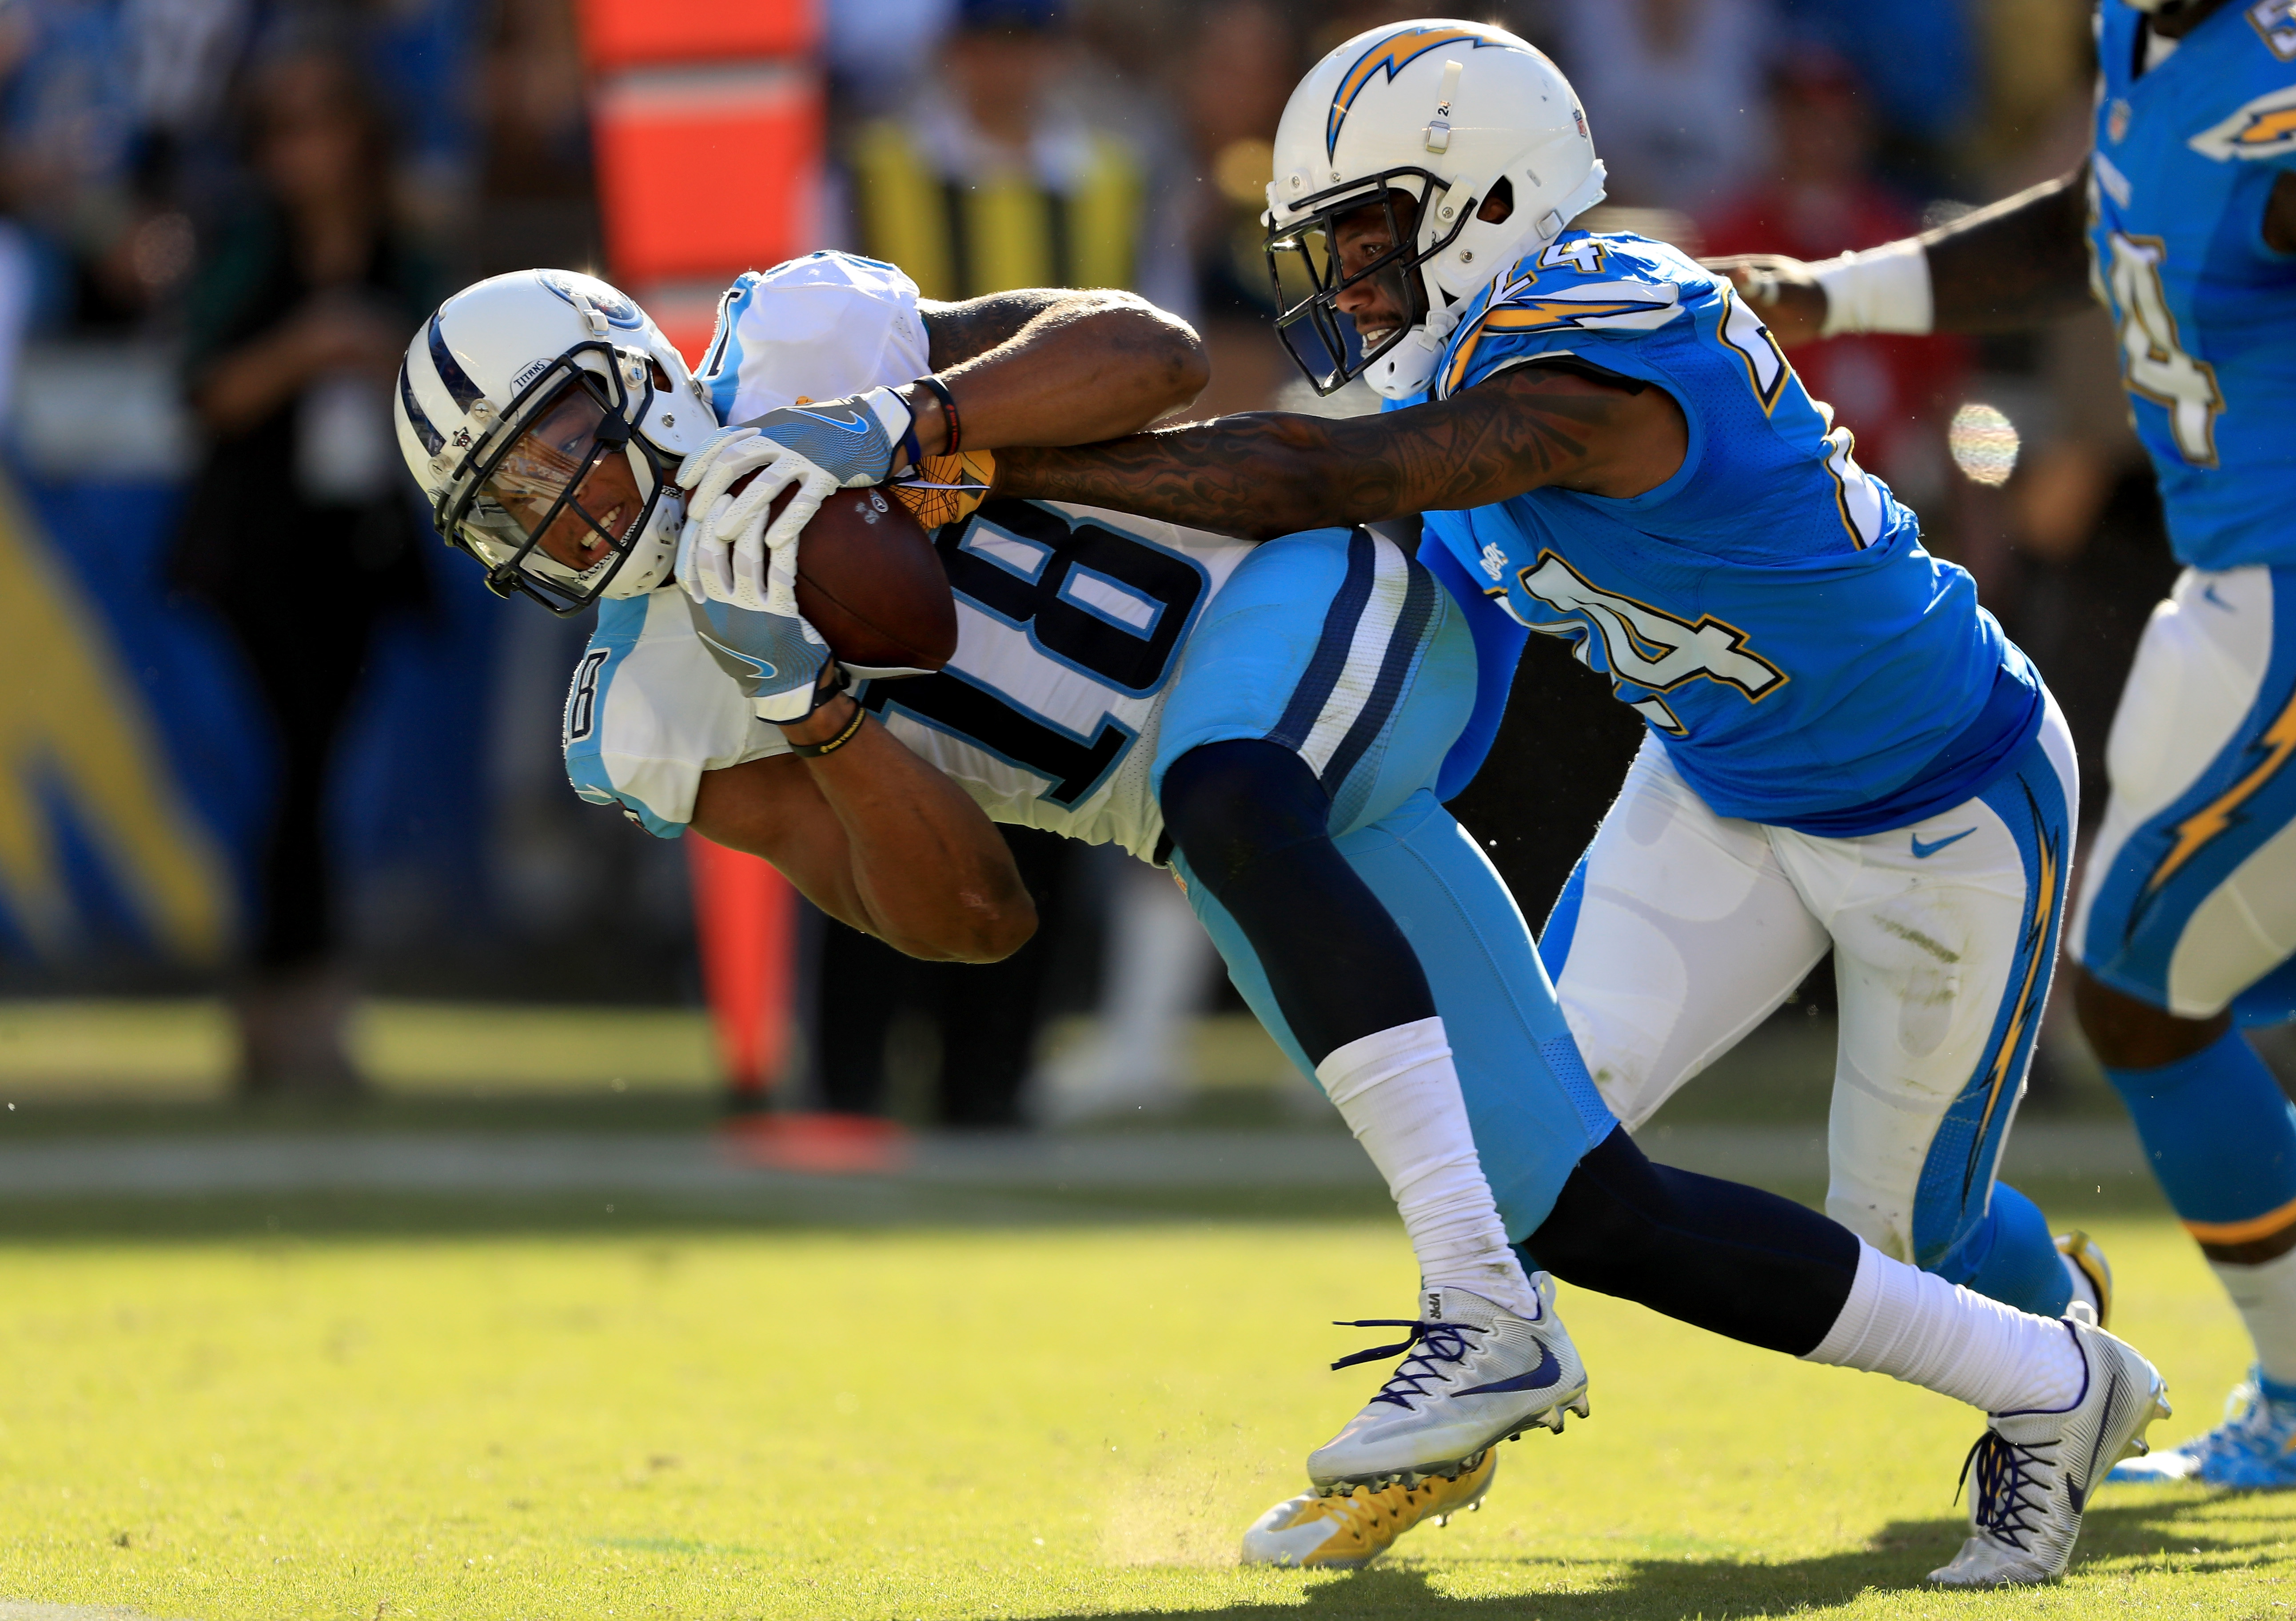 621521668-tennessee-titans-v-san-diego-chargers.jpg